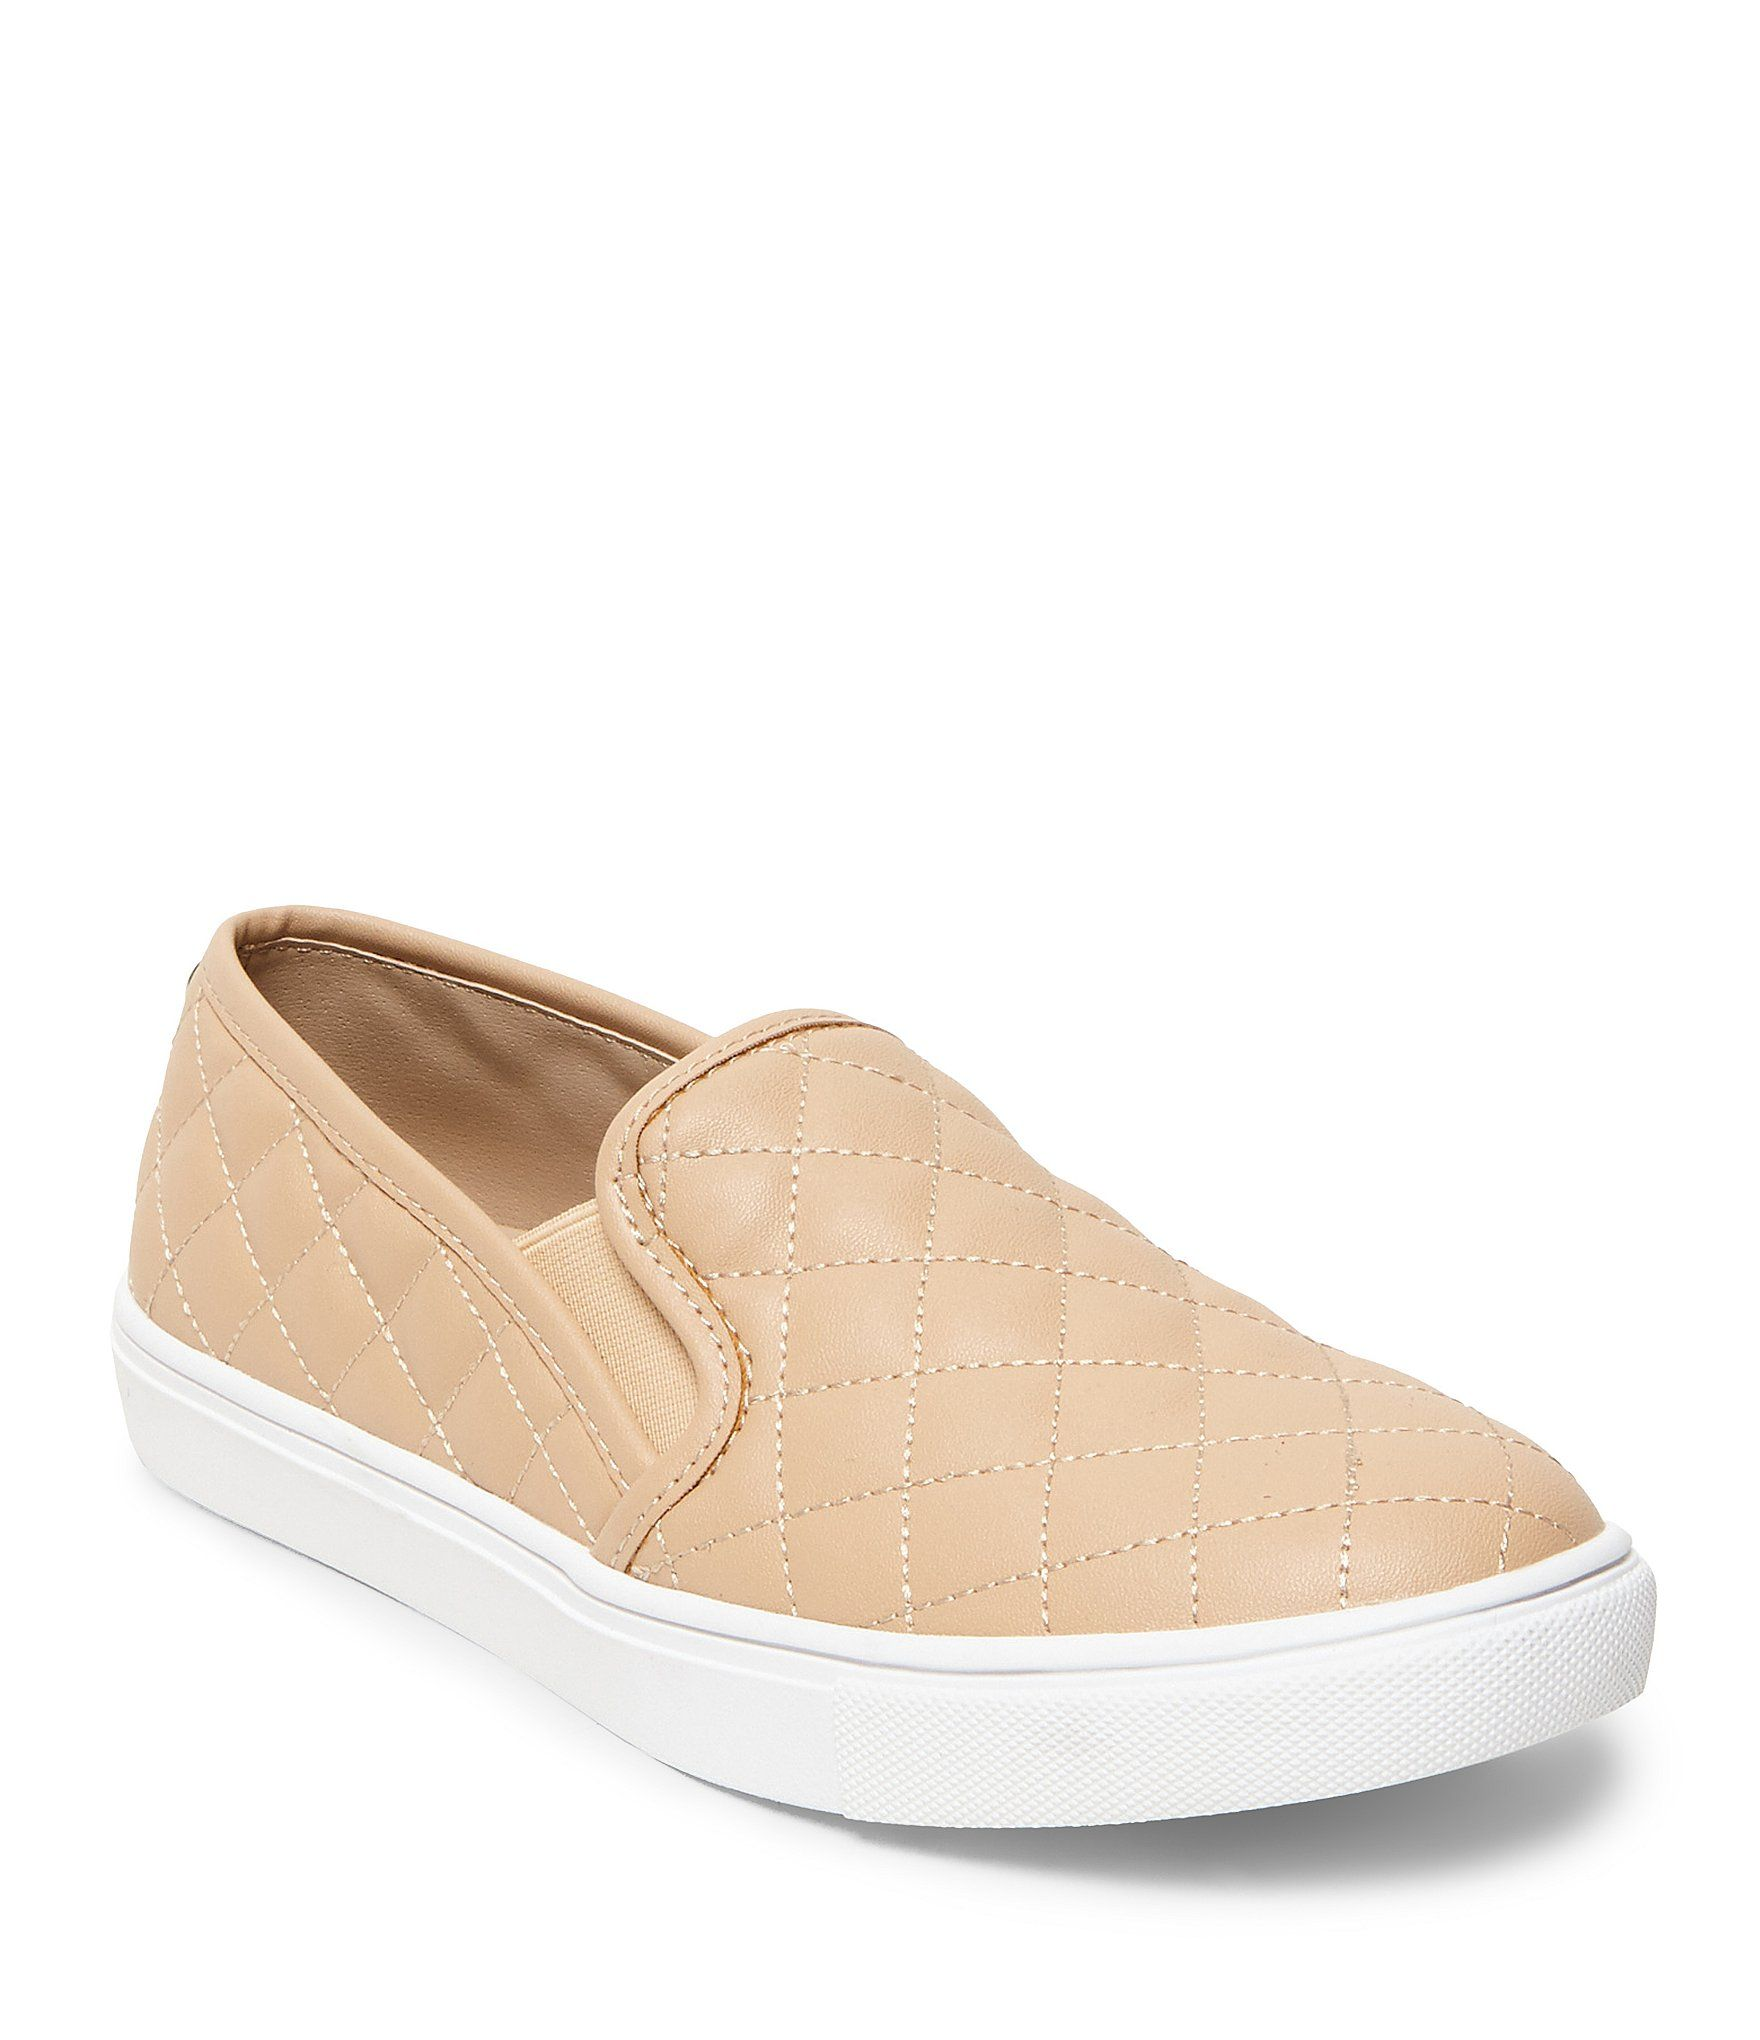 9f2eba4863f Shop for Steve Madden Ecentrcq Quilted Slip-On Sneakers at Dillards.com.  Visit Dillards.com to find clothing